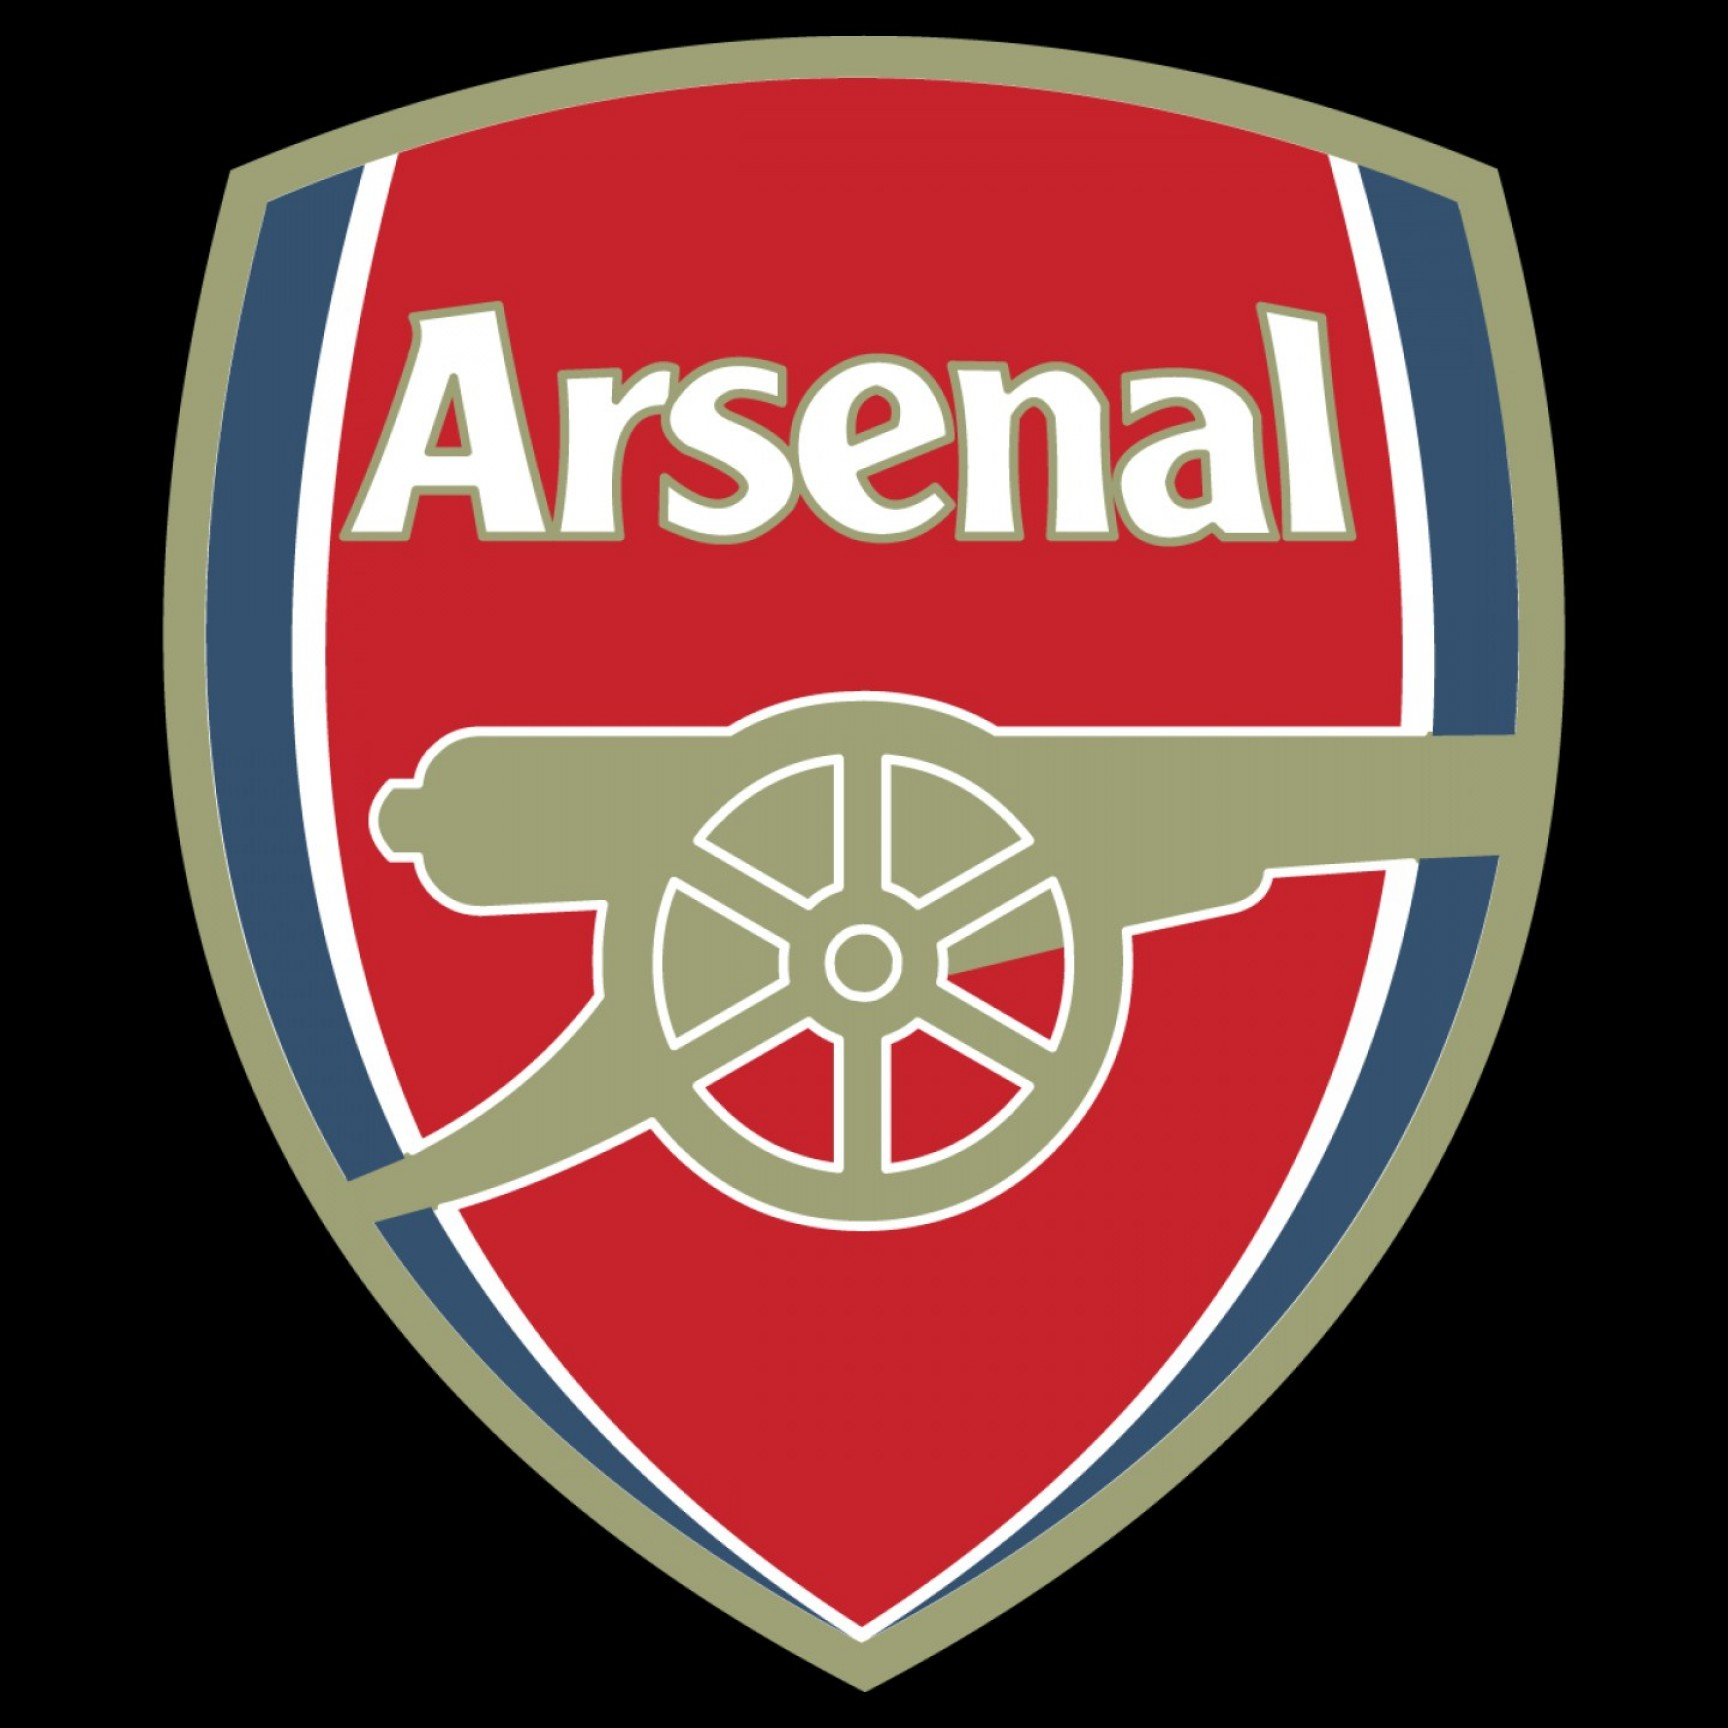 Arsenal Fc Football Club Logo Vector.